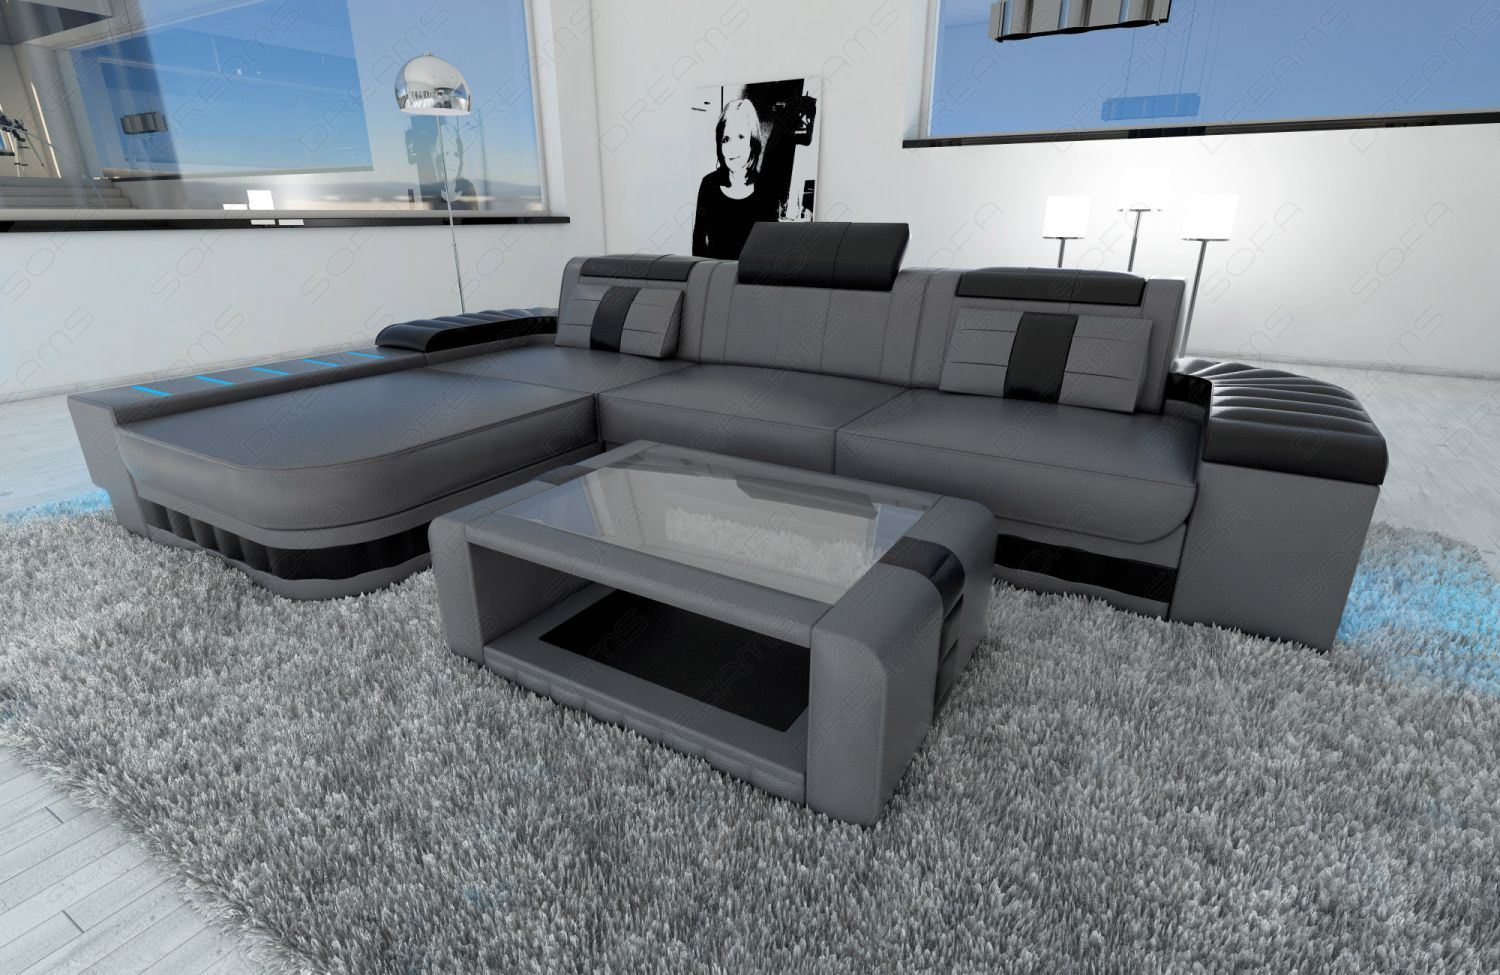 designercouch sofa bellagio l form ecksofa couch led beleuchtung grau schwarz ebay. Black Bedroom Furniture Sets. Home Design Ideas